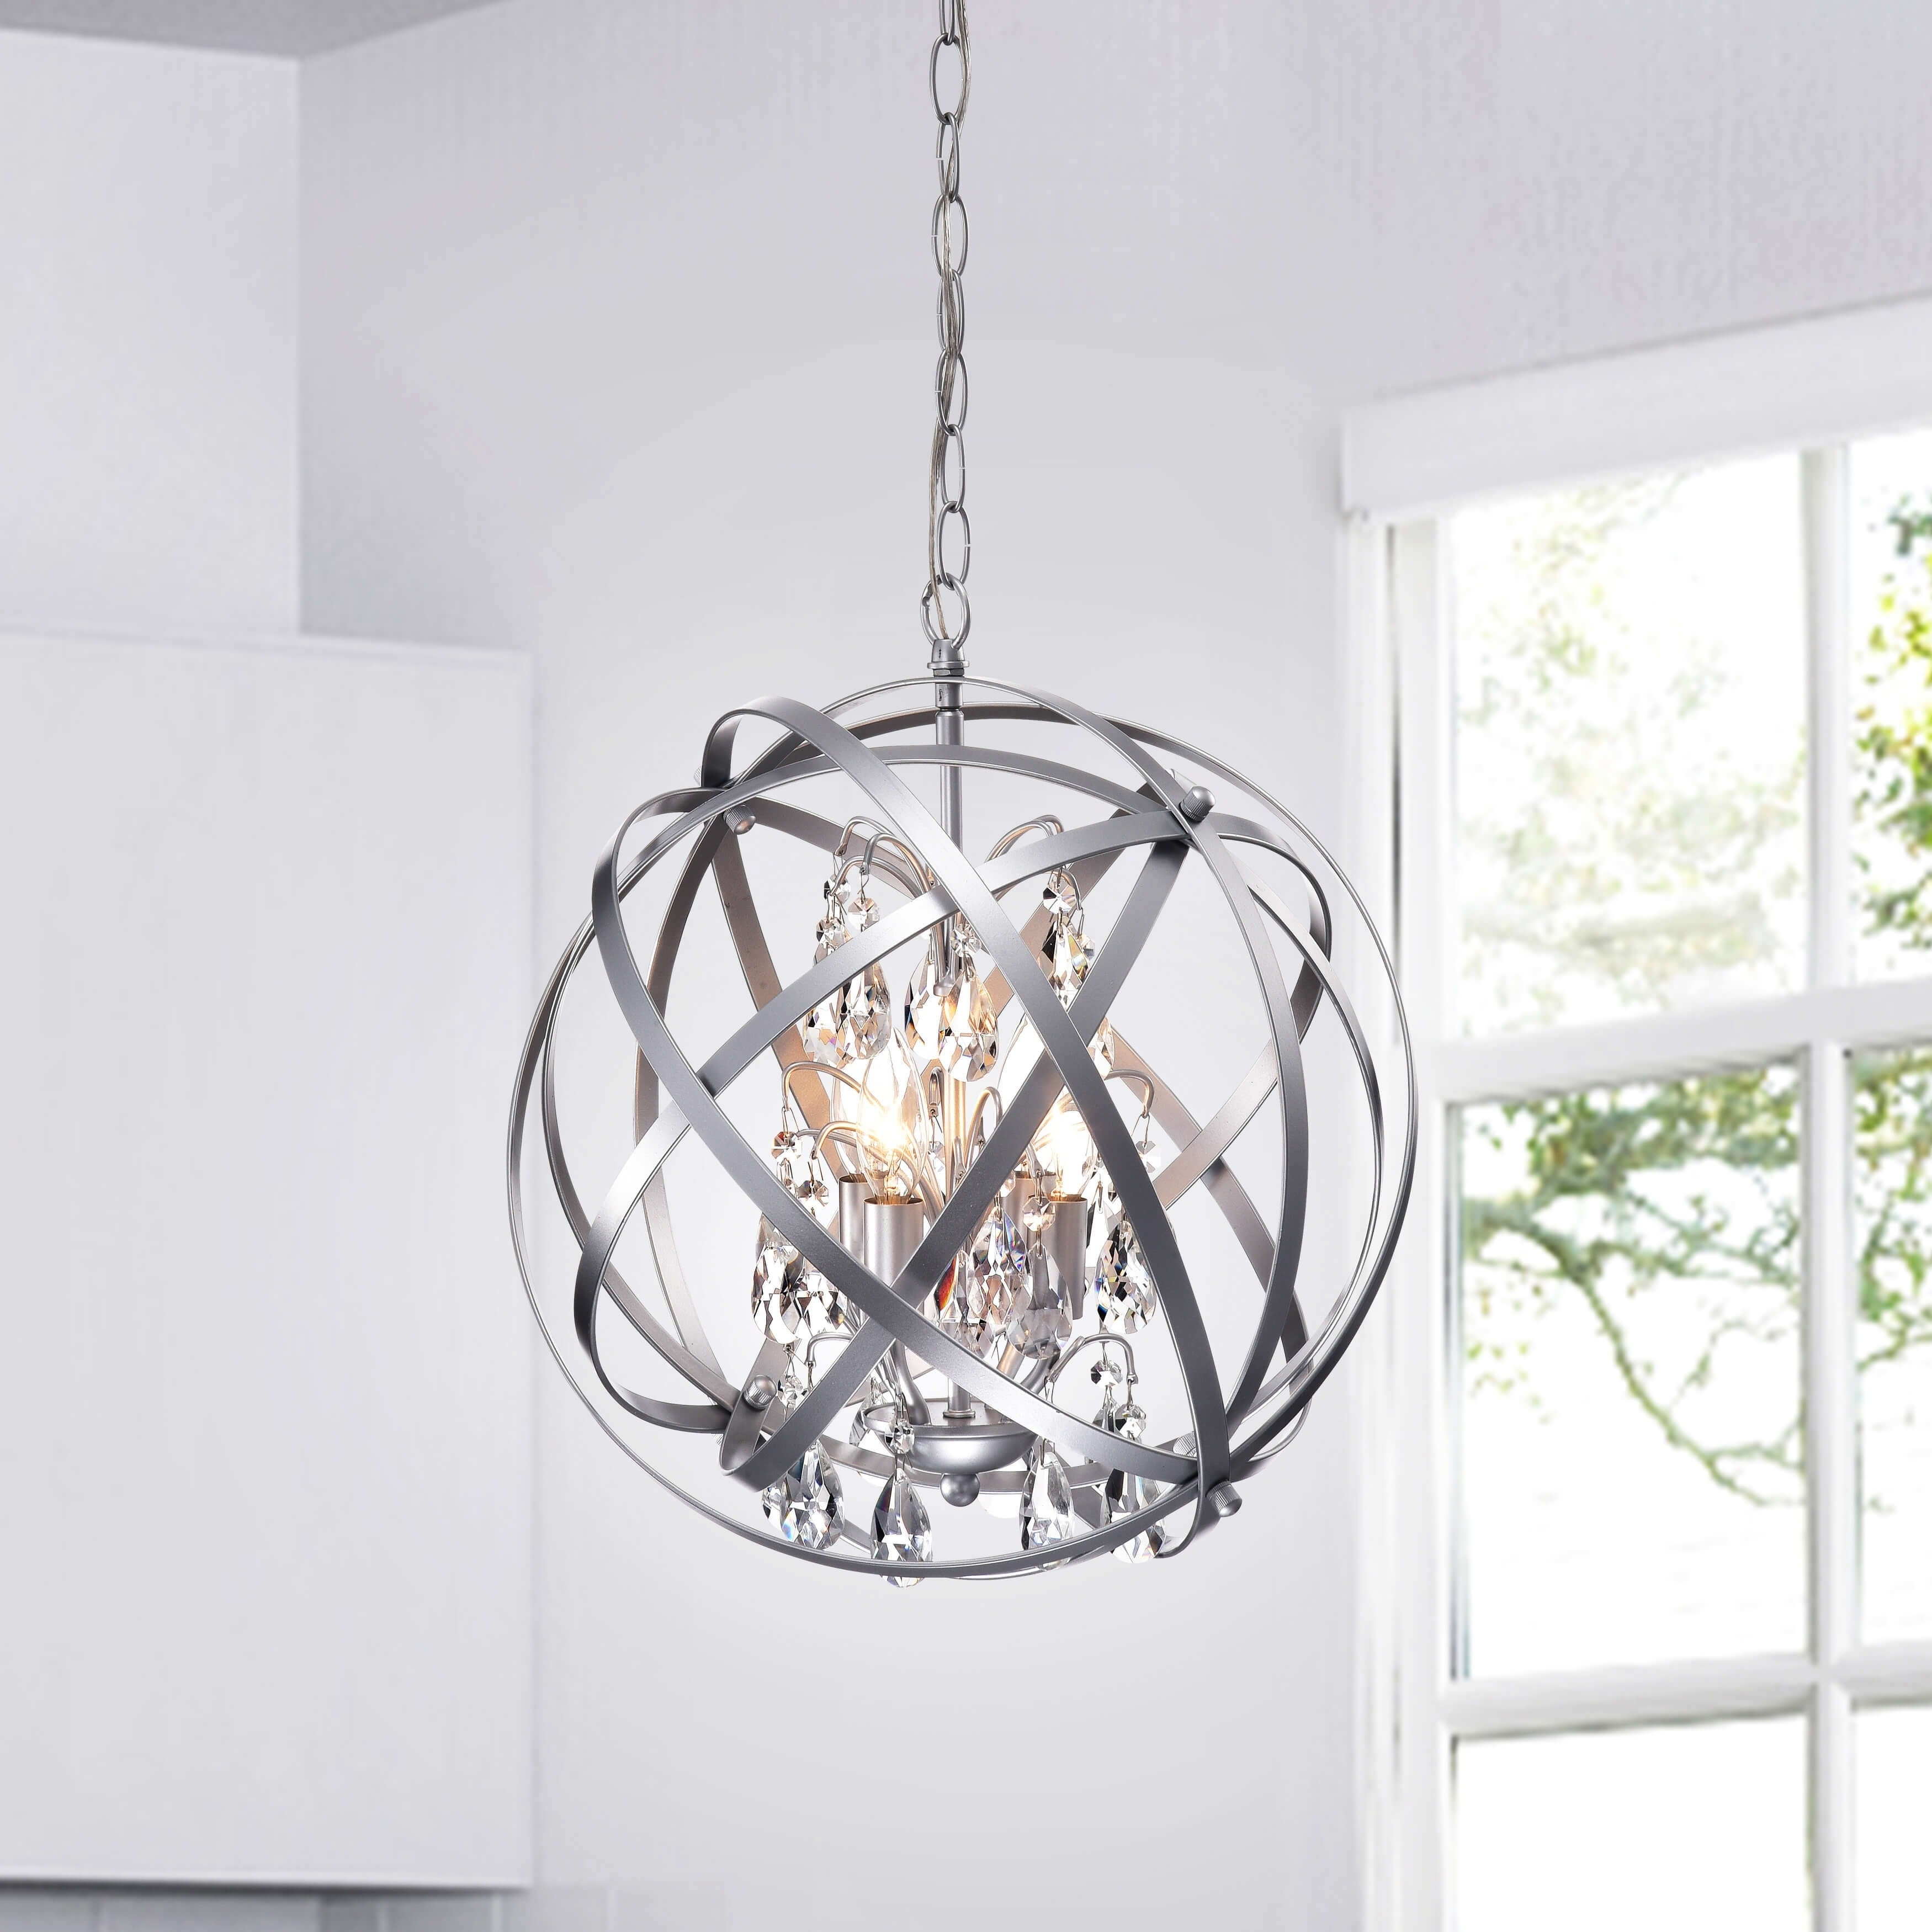 Industrial Lighting & Ceiling Fans | Find Great Deals with regard to Delon 4-Light Square Chandeliers (Image 16 of 30)